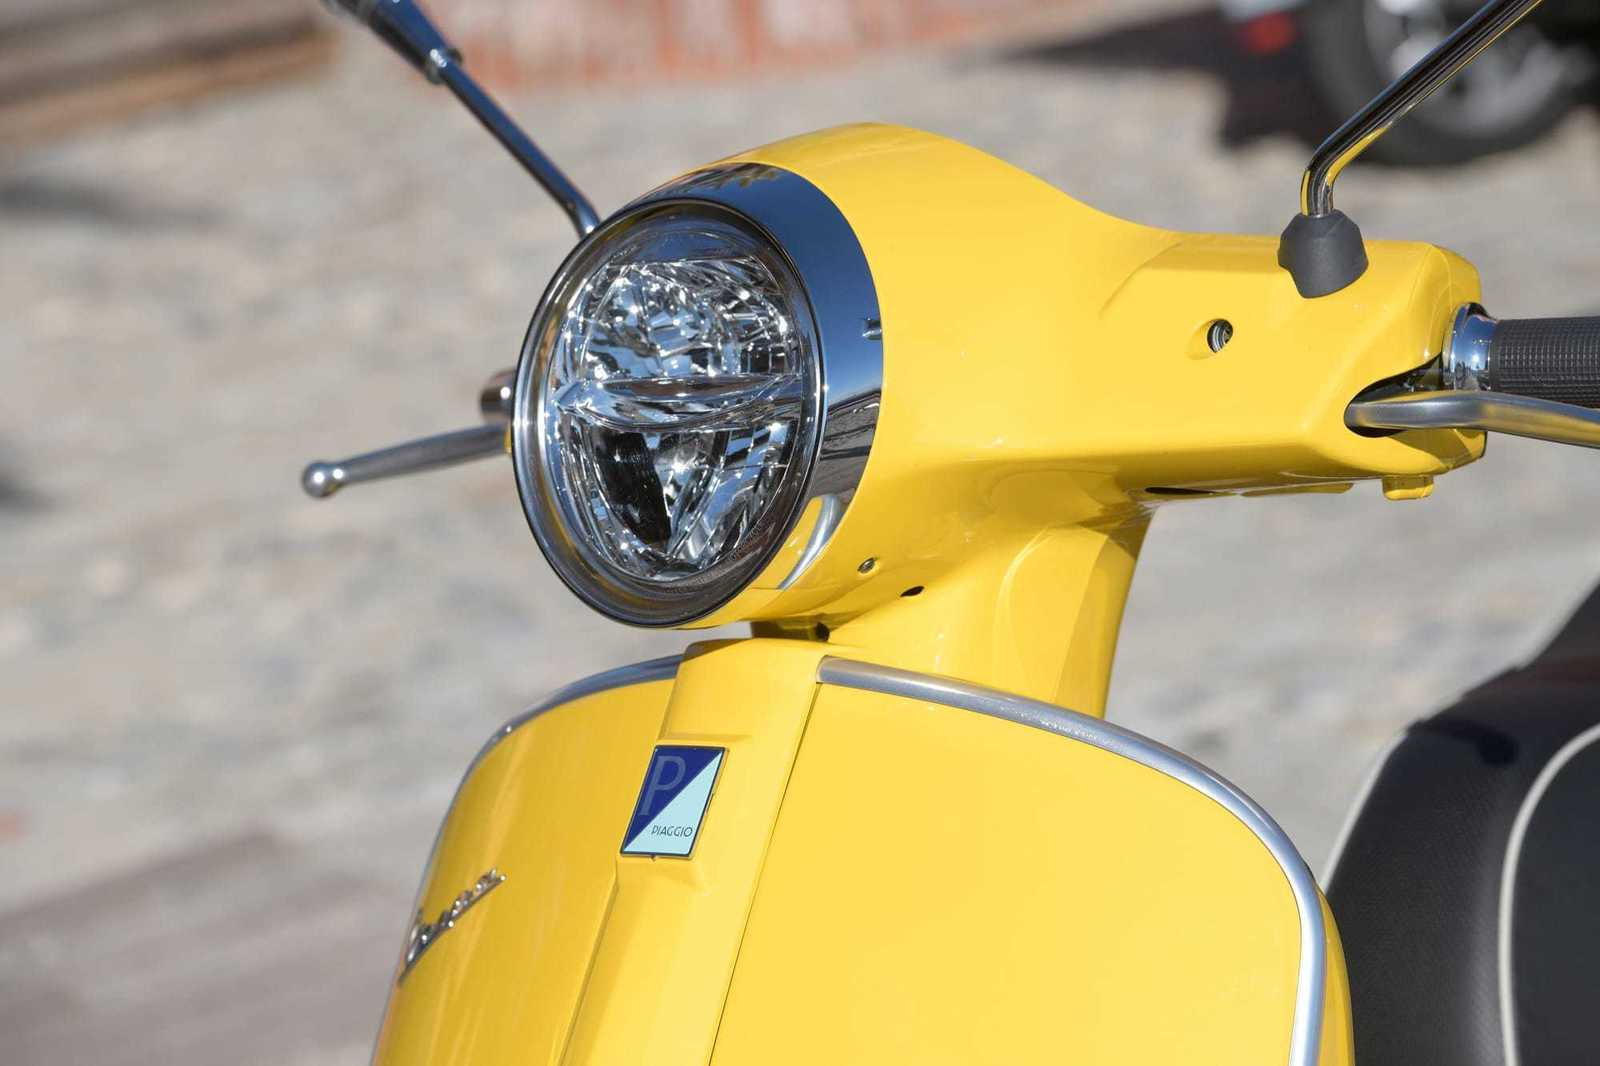 Xclusive Bike - Torhout - Vespa GTS SUPER 125/300 CC